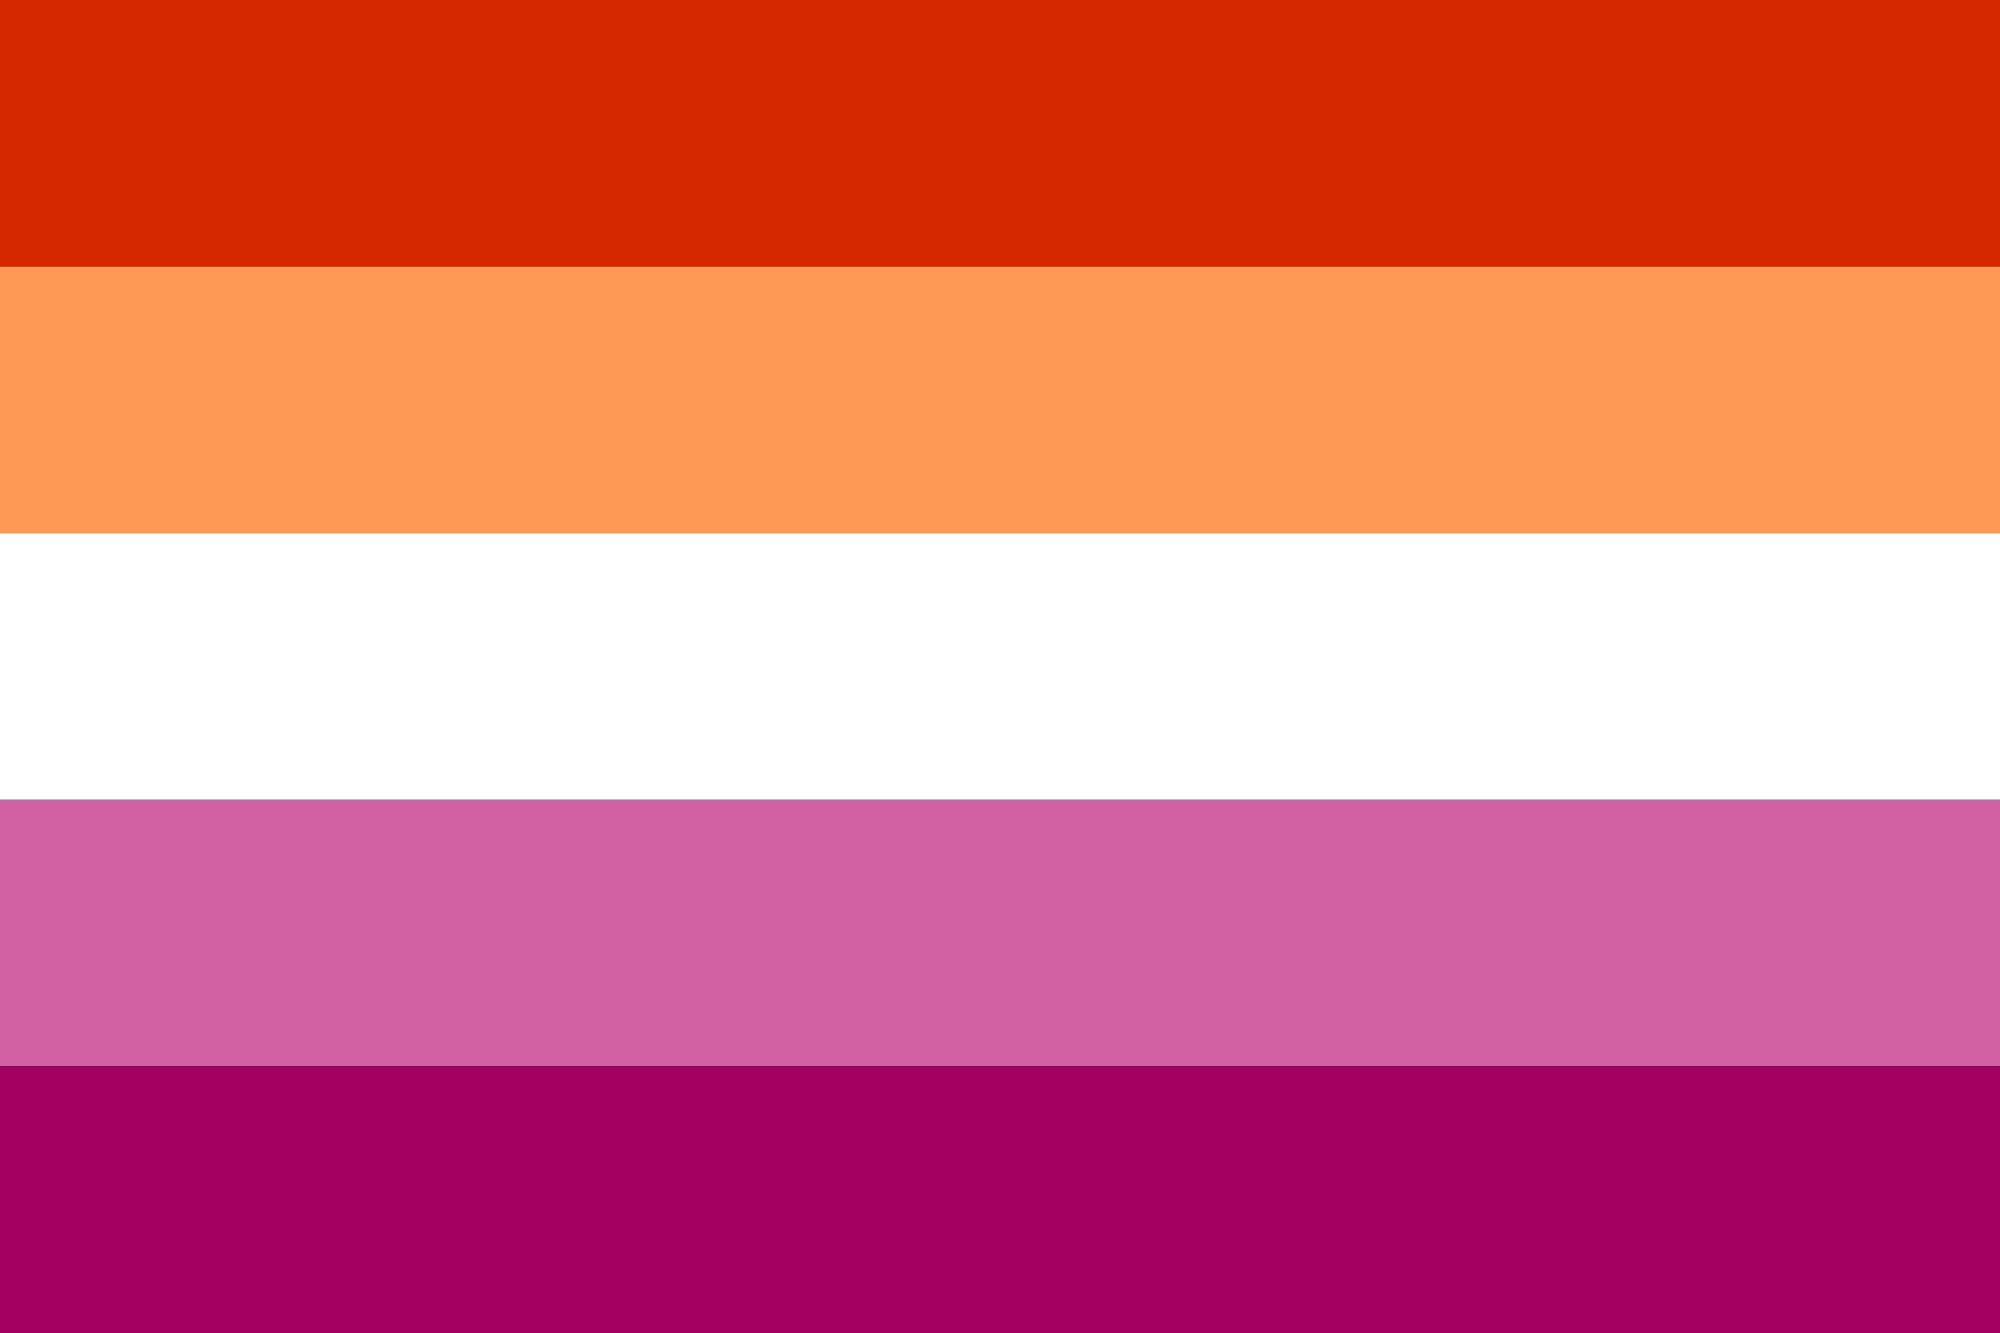 Happy Lesbian Visibility Day!